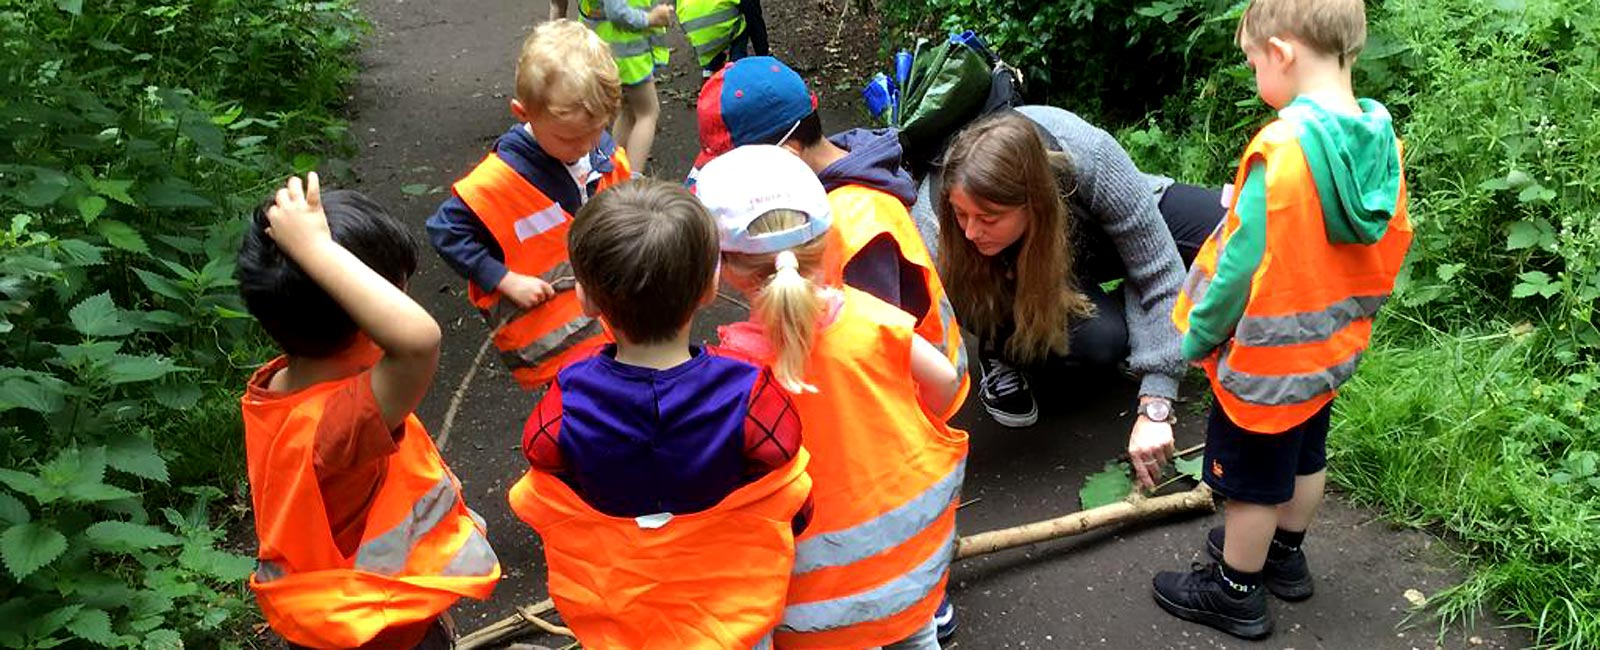 Our weekly Forest School classes allow our older children to learn from nature & benefit from the natural environment nearby.